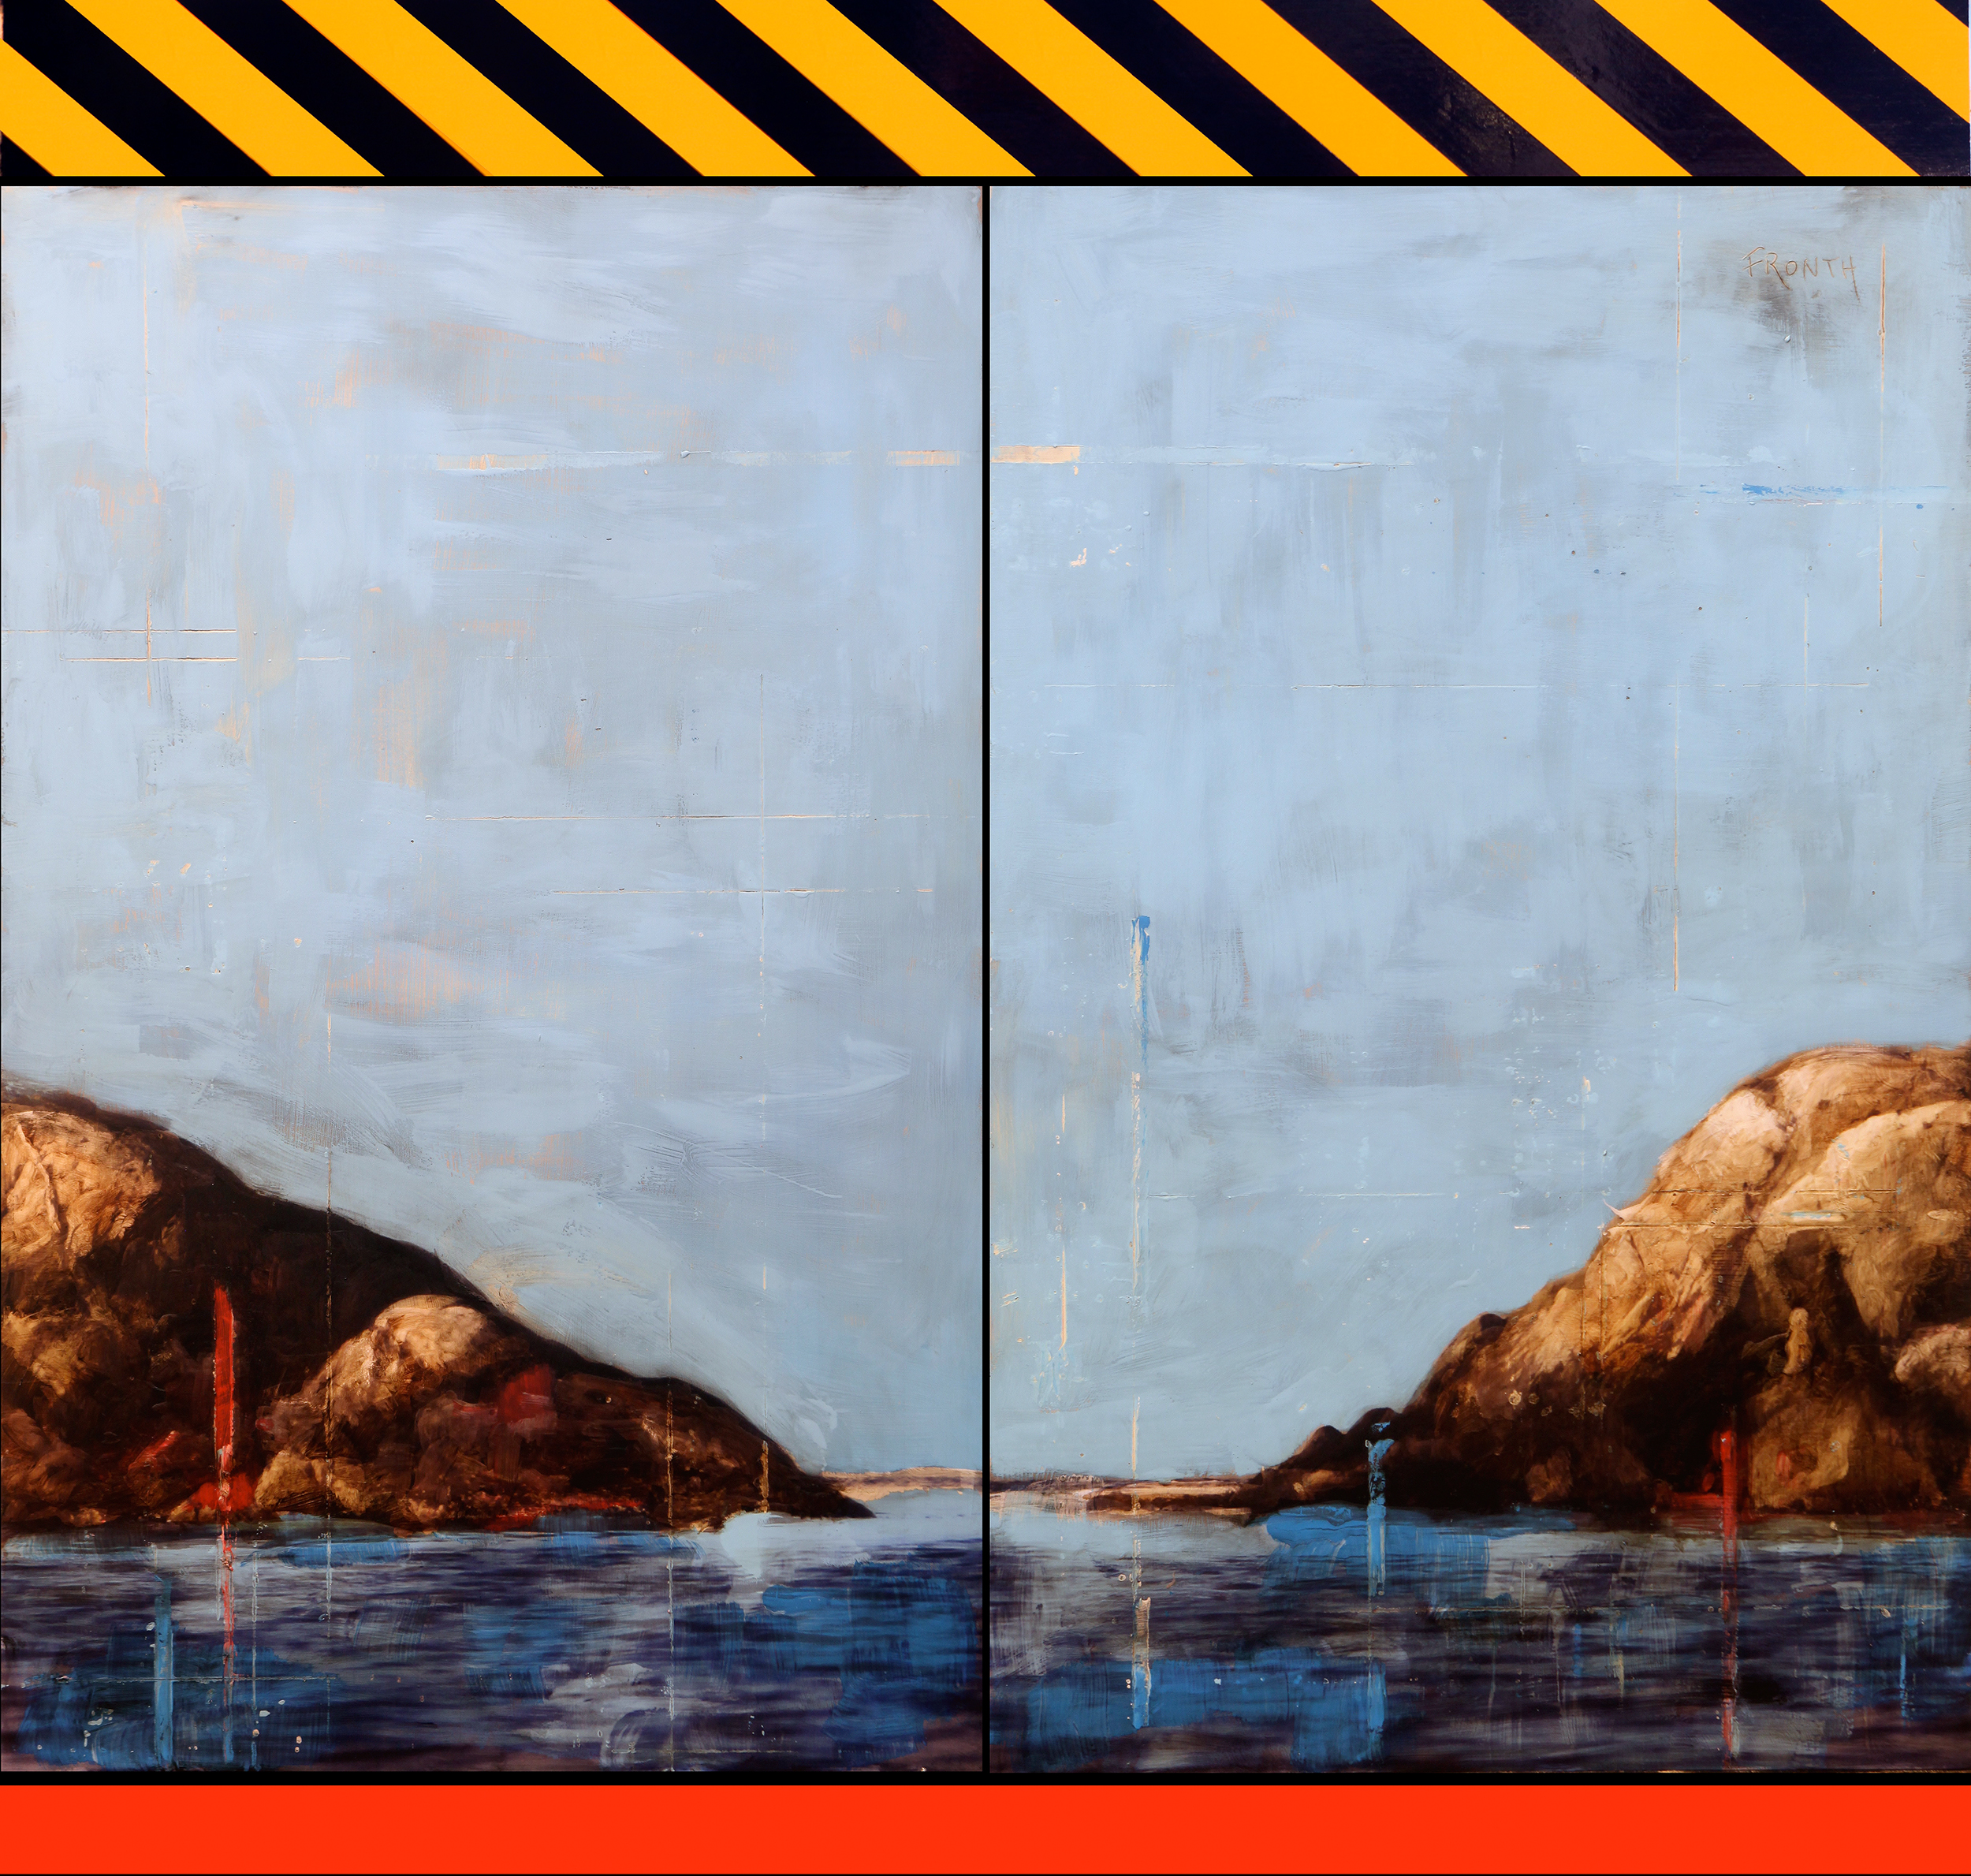 Landscape Divided / Ribeholmen  Mixed Media / Oil on MDF / 4 panels 240 x 200 cm / 94 x 78 in Collection of Sparebanken Sør / Norway 2014